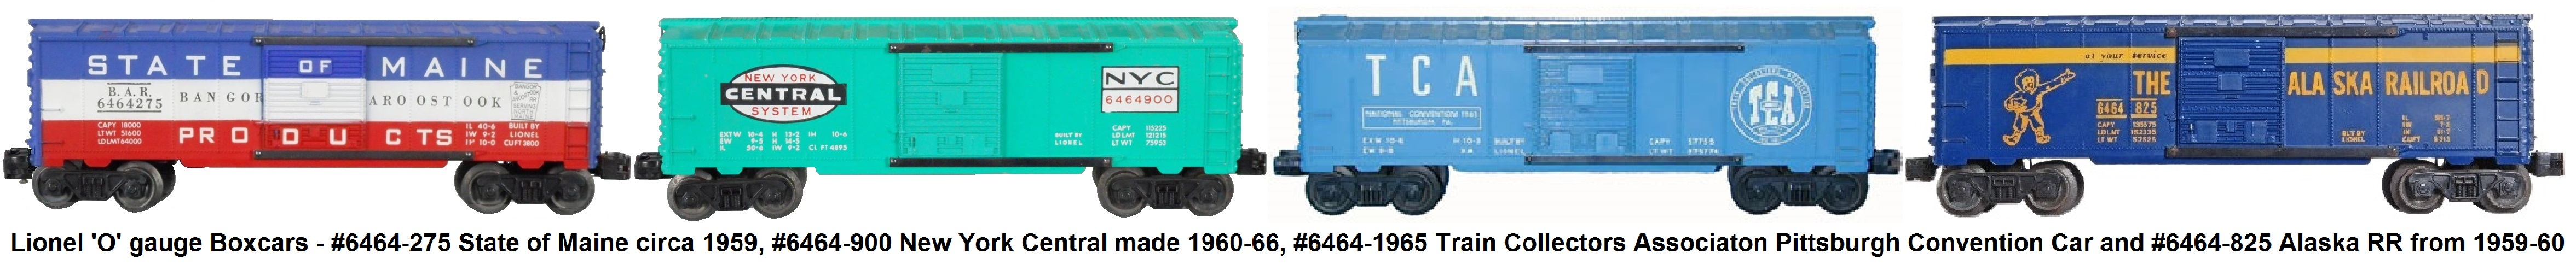 Lionel #6464 series box cars from the post-war era.